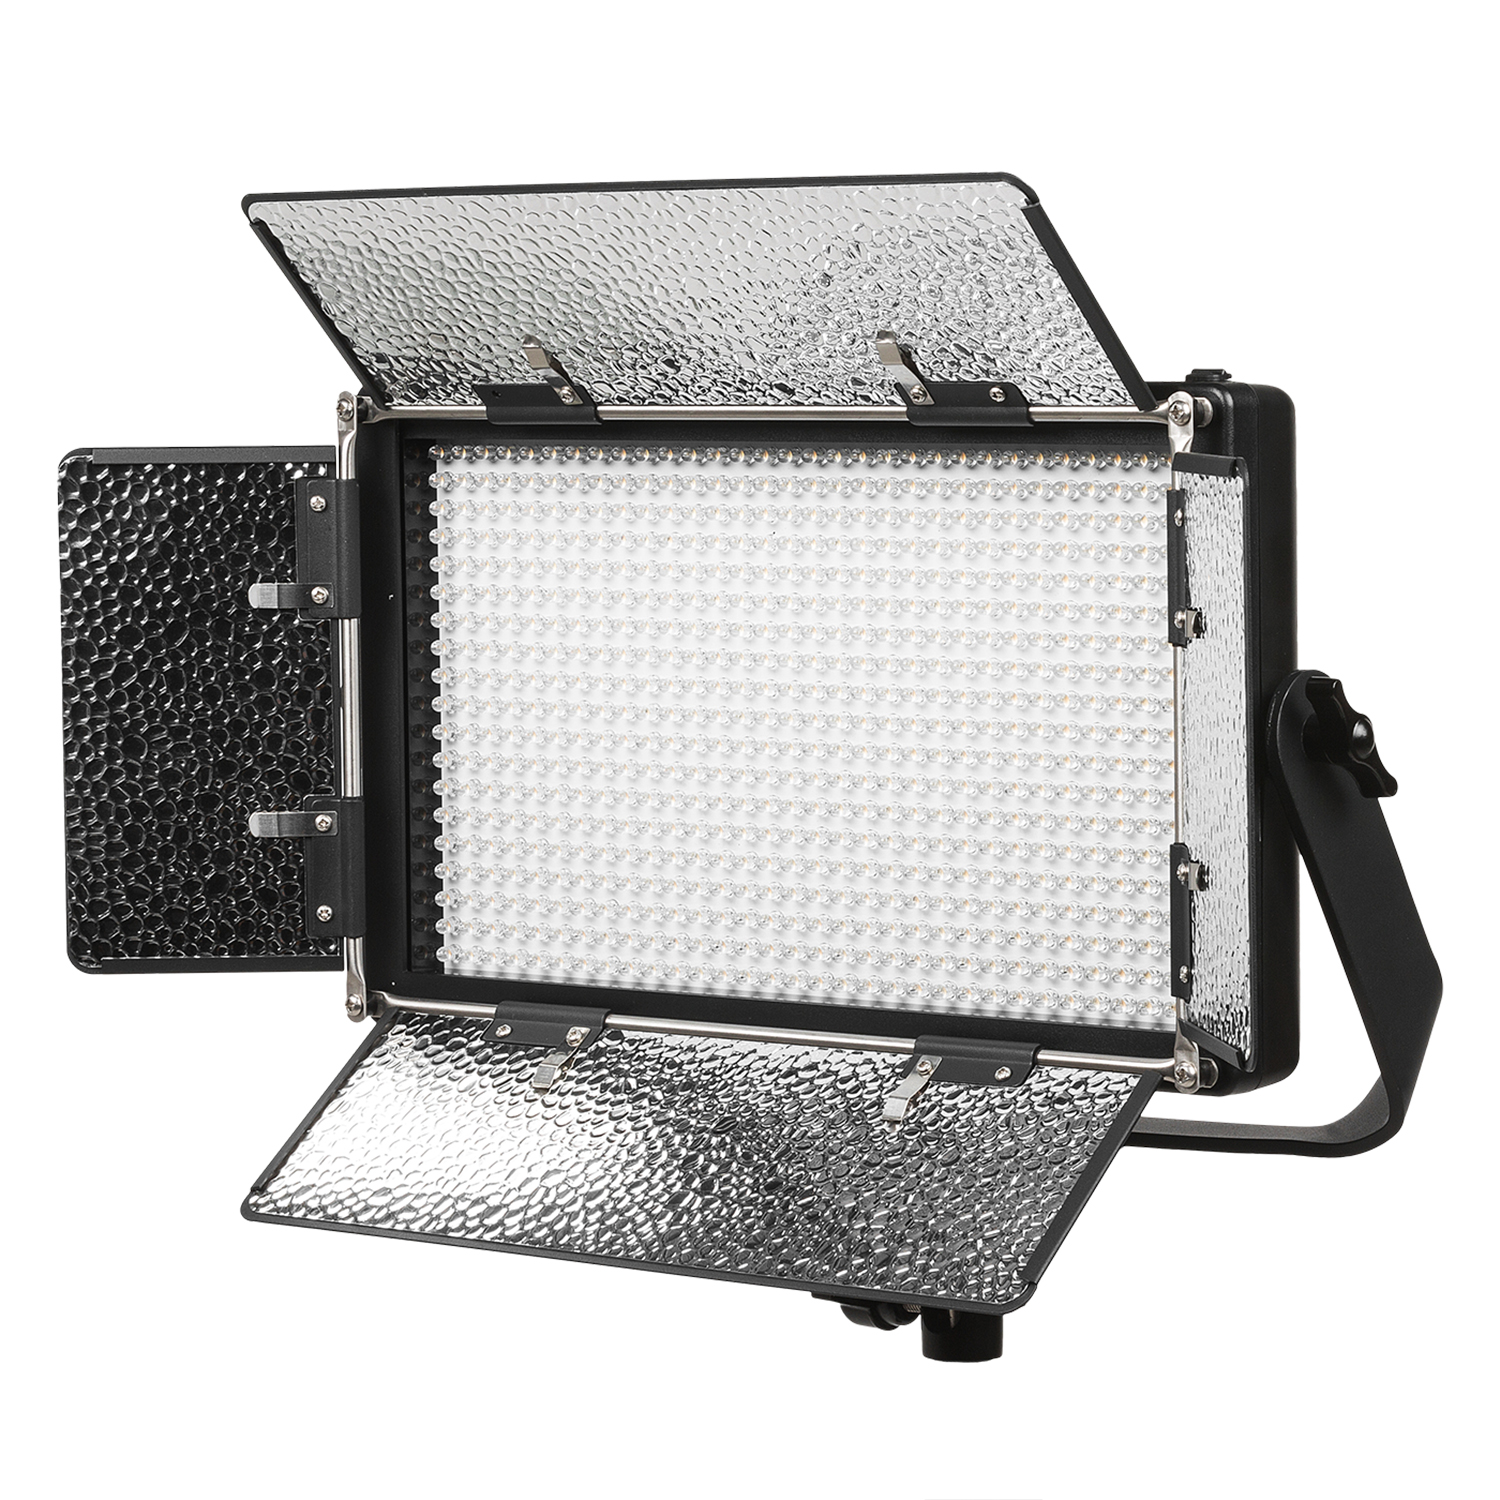 Ikan RAYDEN HALF X 1 DAYLIGHT STUDIO LIGHT W/ DMX CONTROL Lighting Ikan